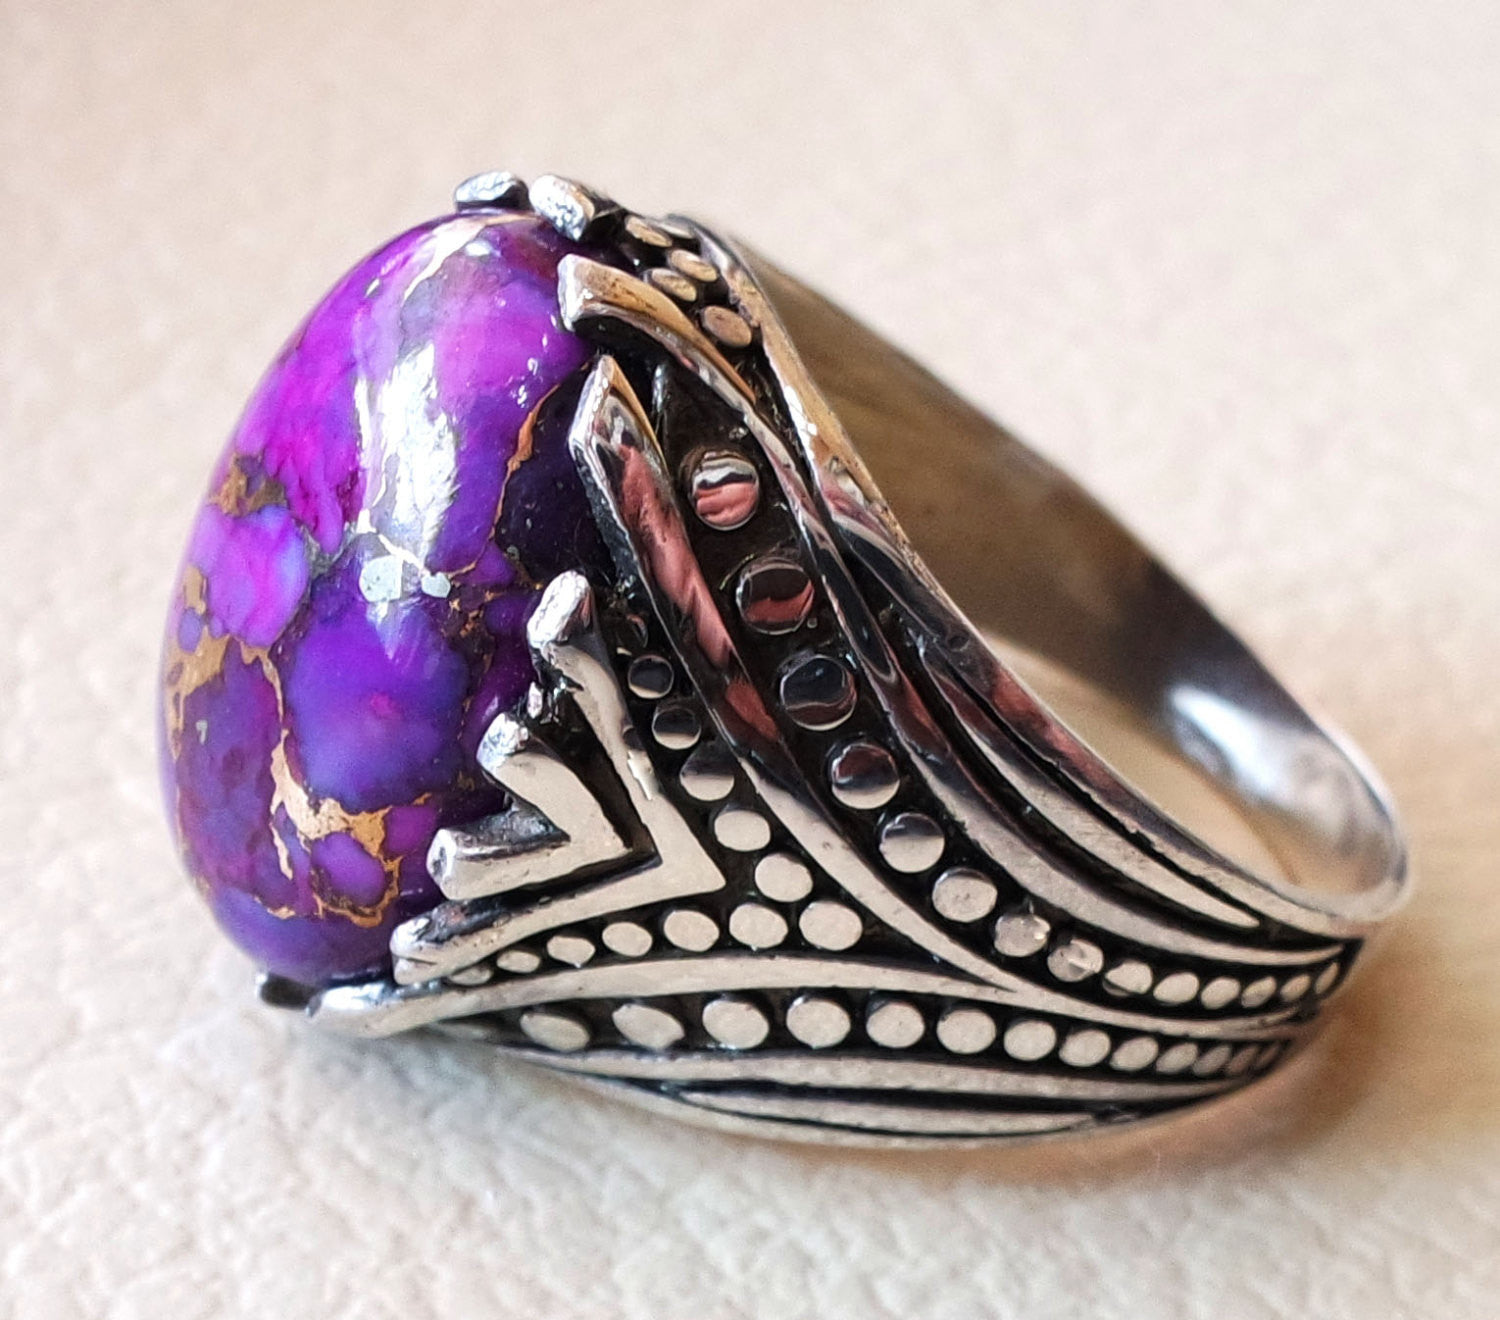 purple copper mohave turquoise top quality semi precious natural stone sterling silver 925 men ring turkish arabic style jewelry all sizes